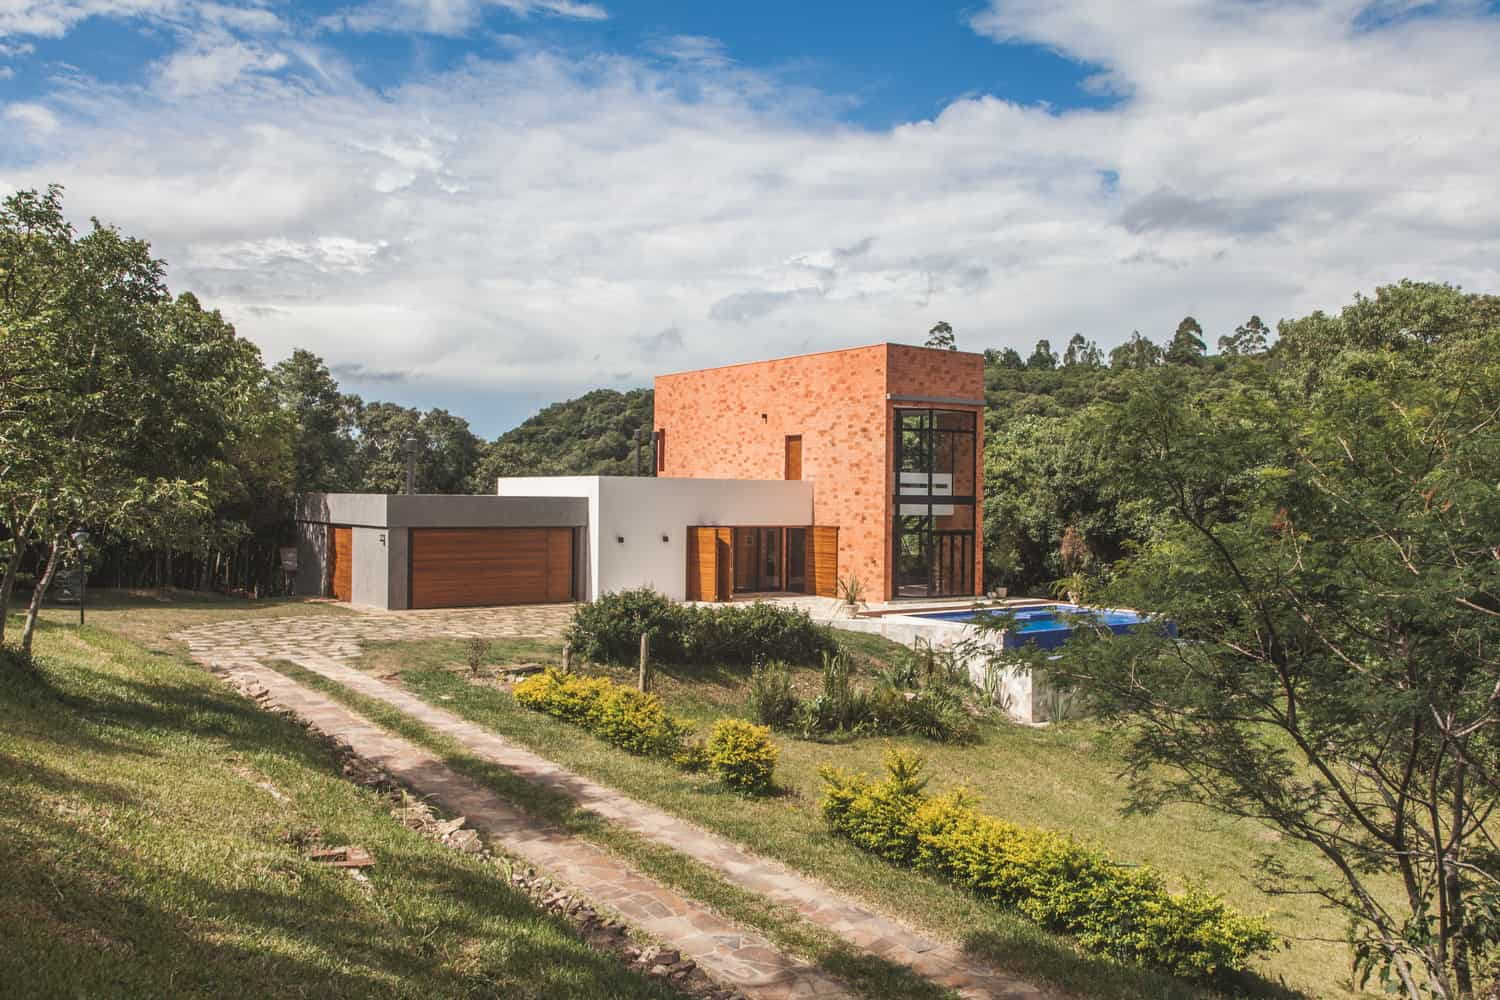 Private Home designed by Q_arts Arquitetura in Itaara, Rio Grande do Sul, Brazil